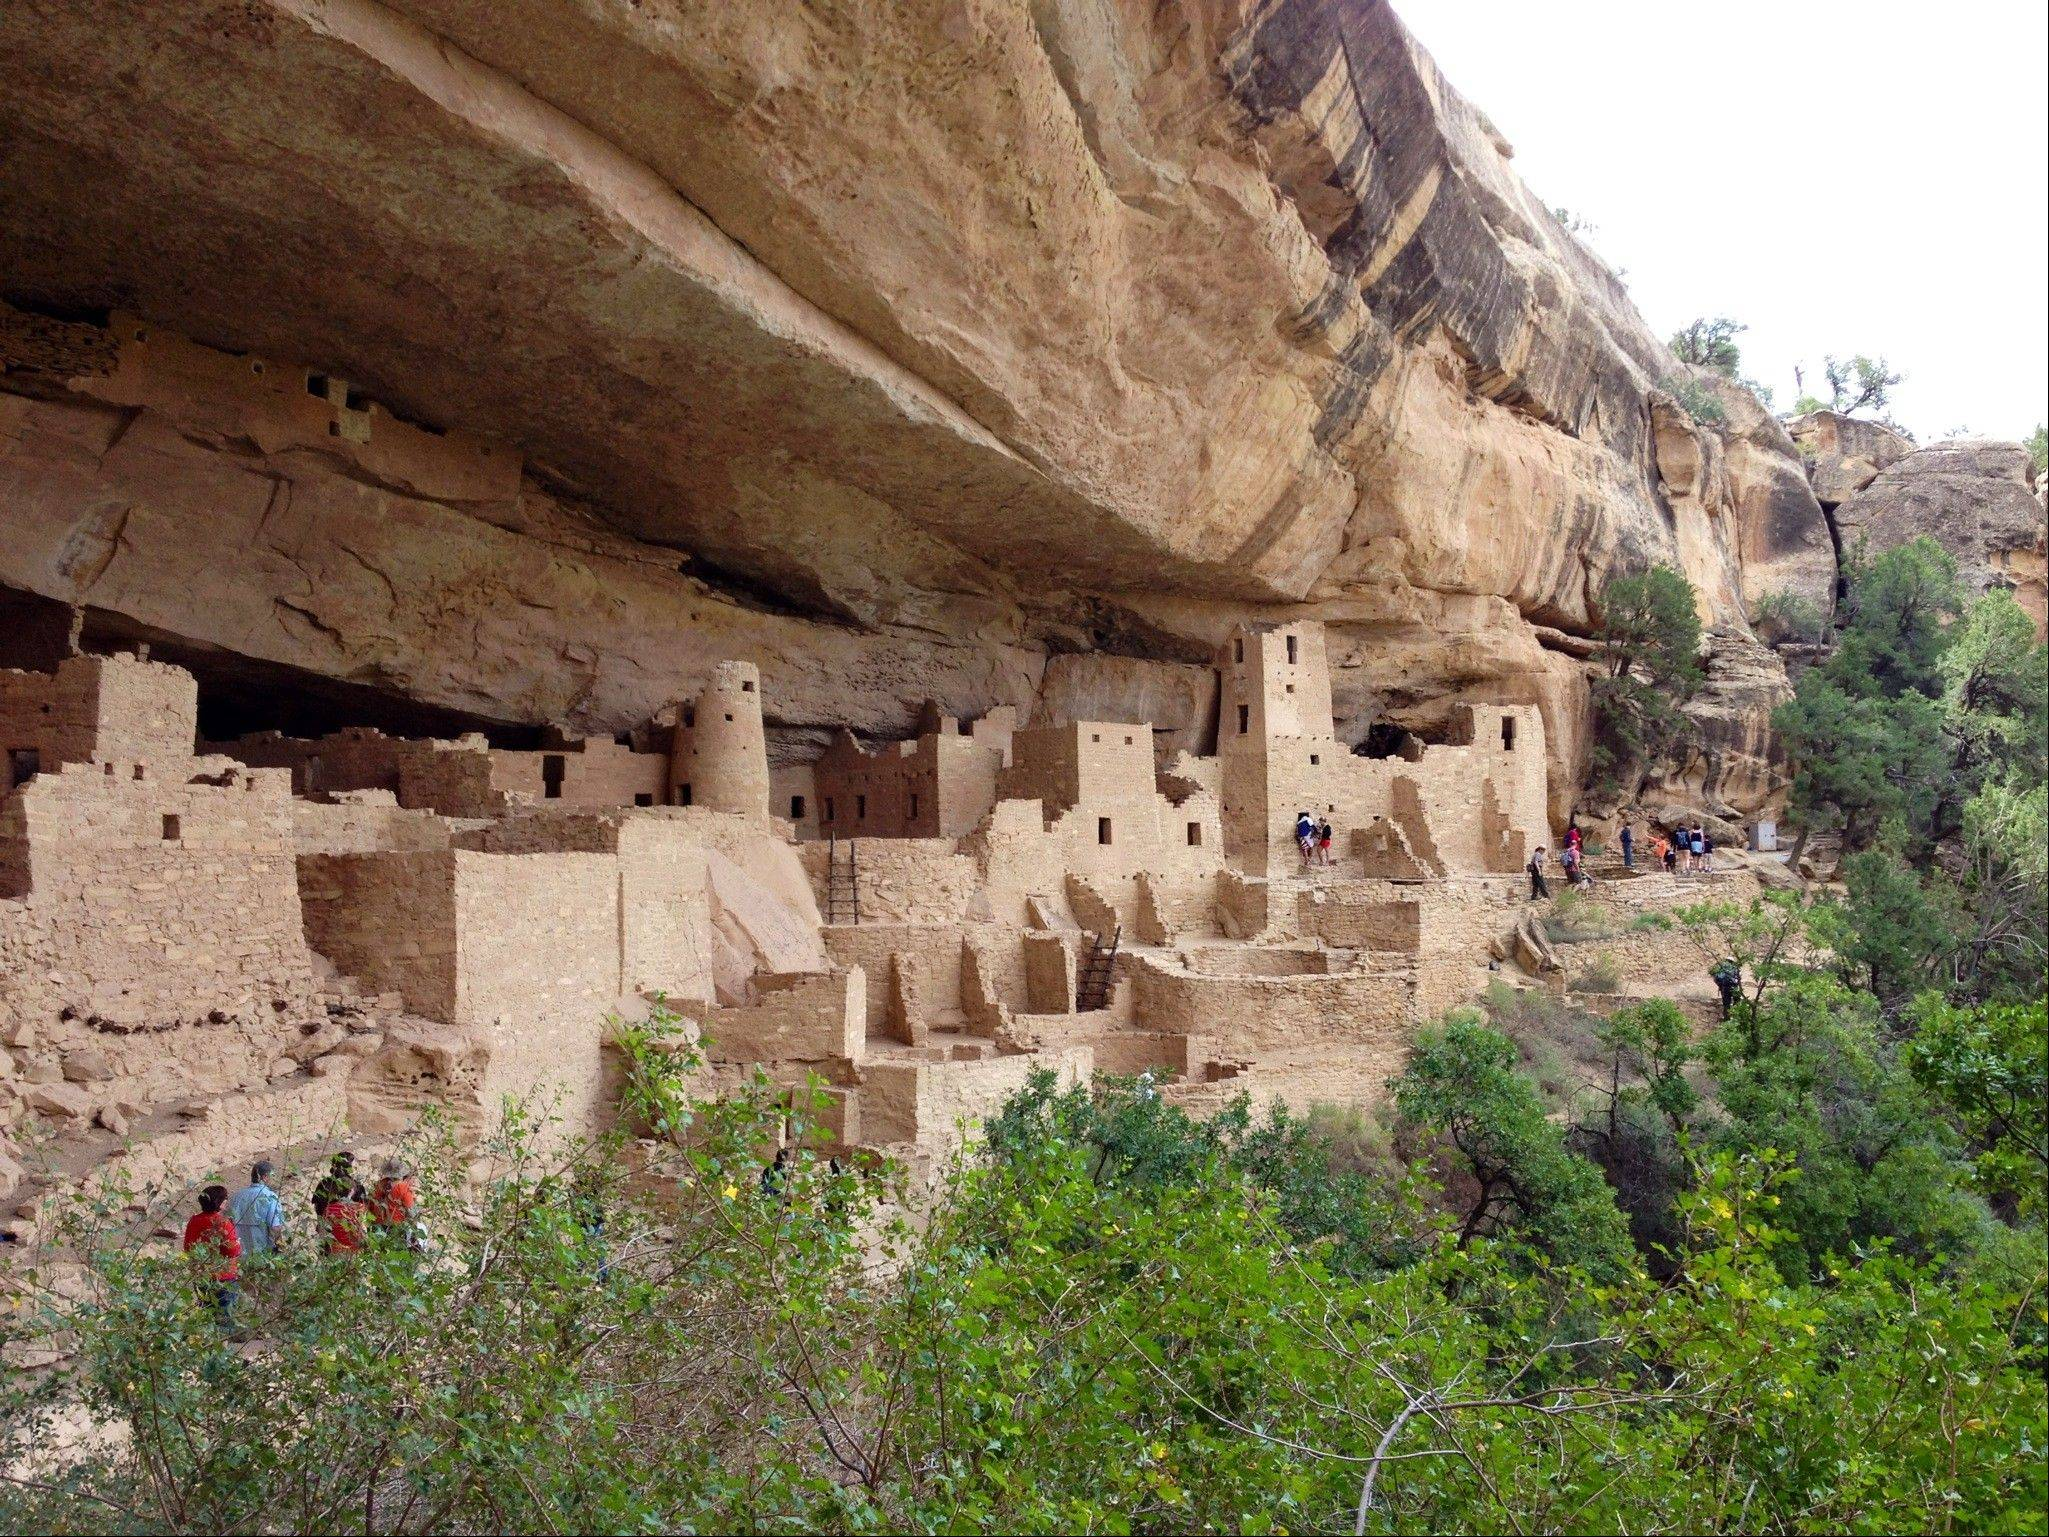 Ancestral Puebloans built vast cliff dwellings at Mesa Verde starting about 1200 AD and then abandoned them 100 years later.